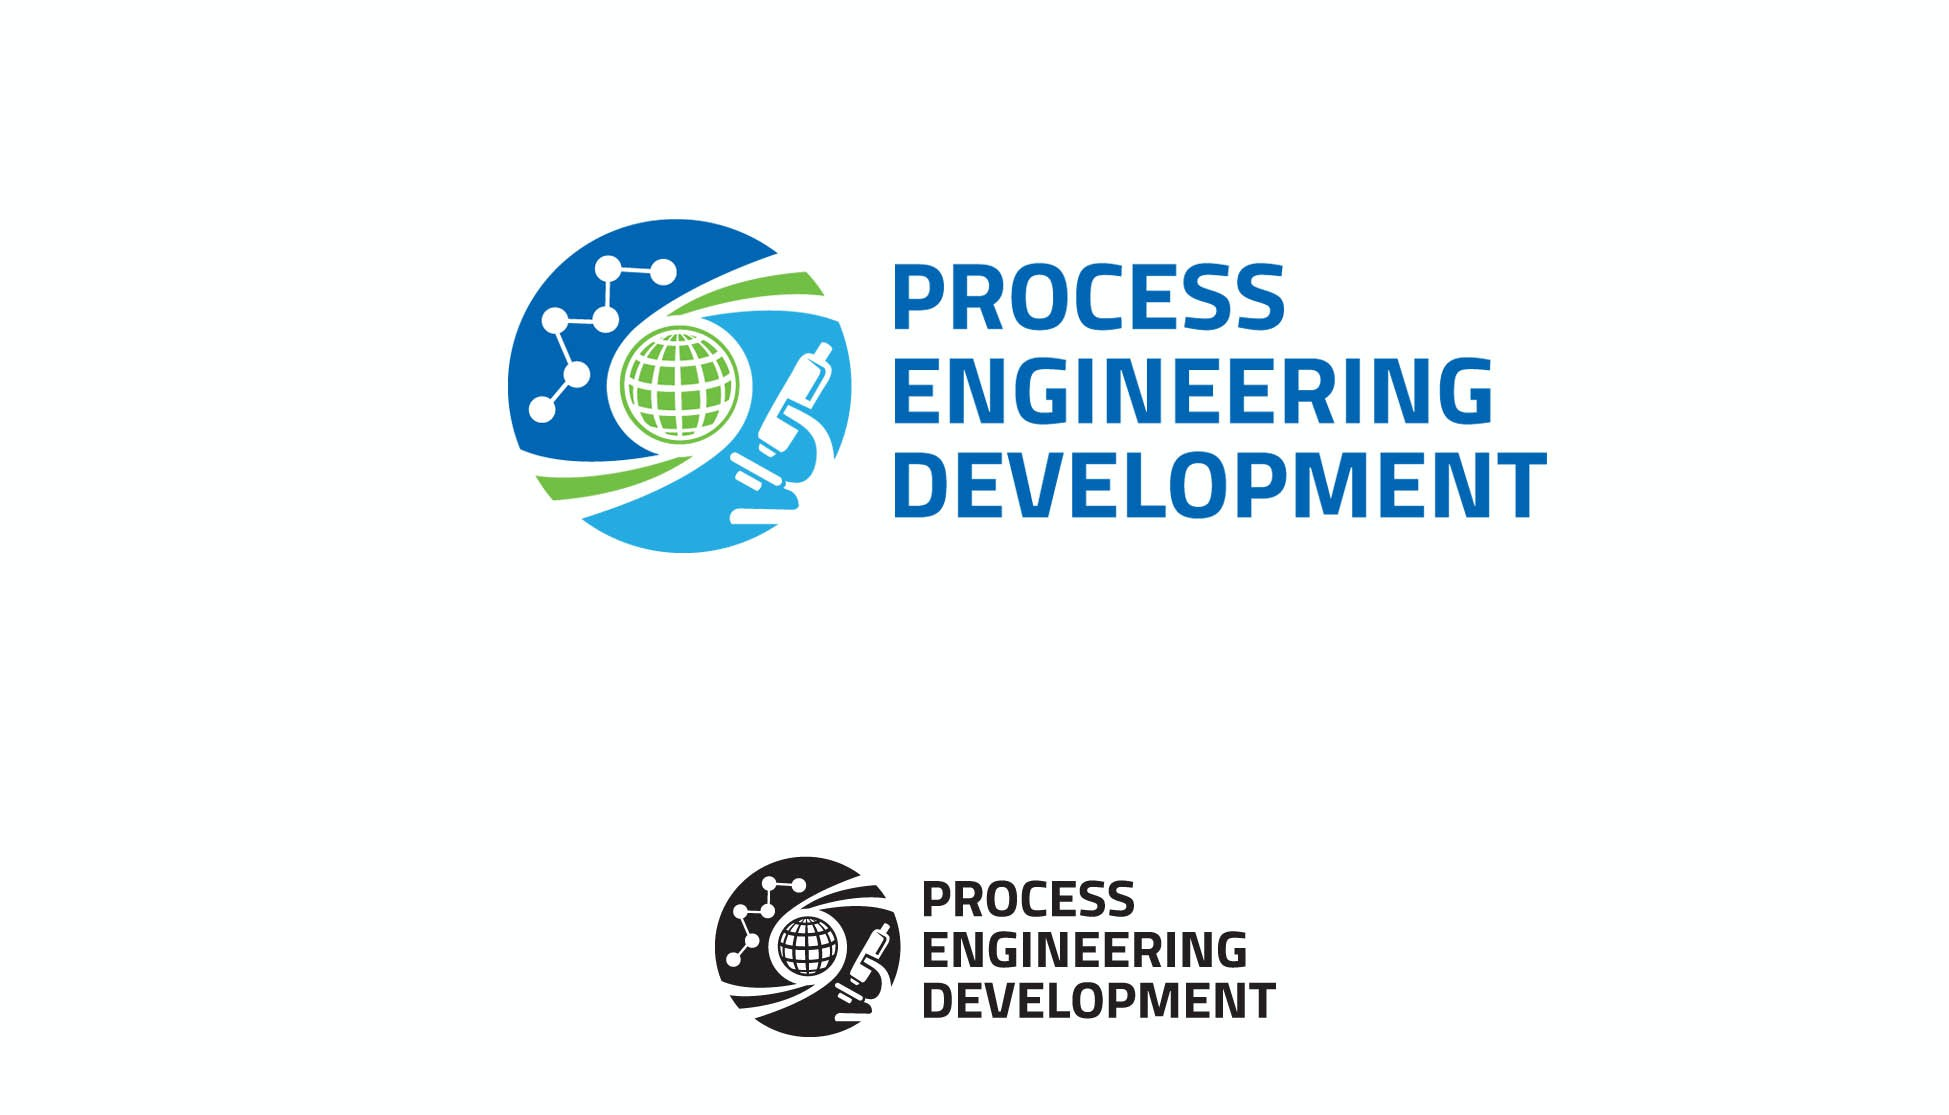 Create a simpler logo for an engineering organization